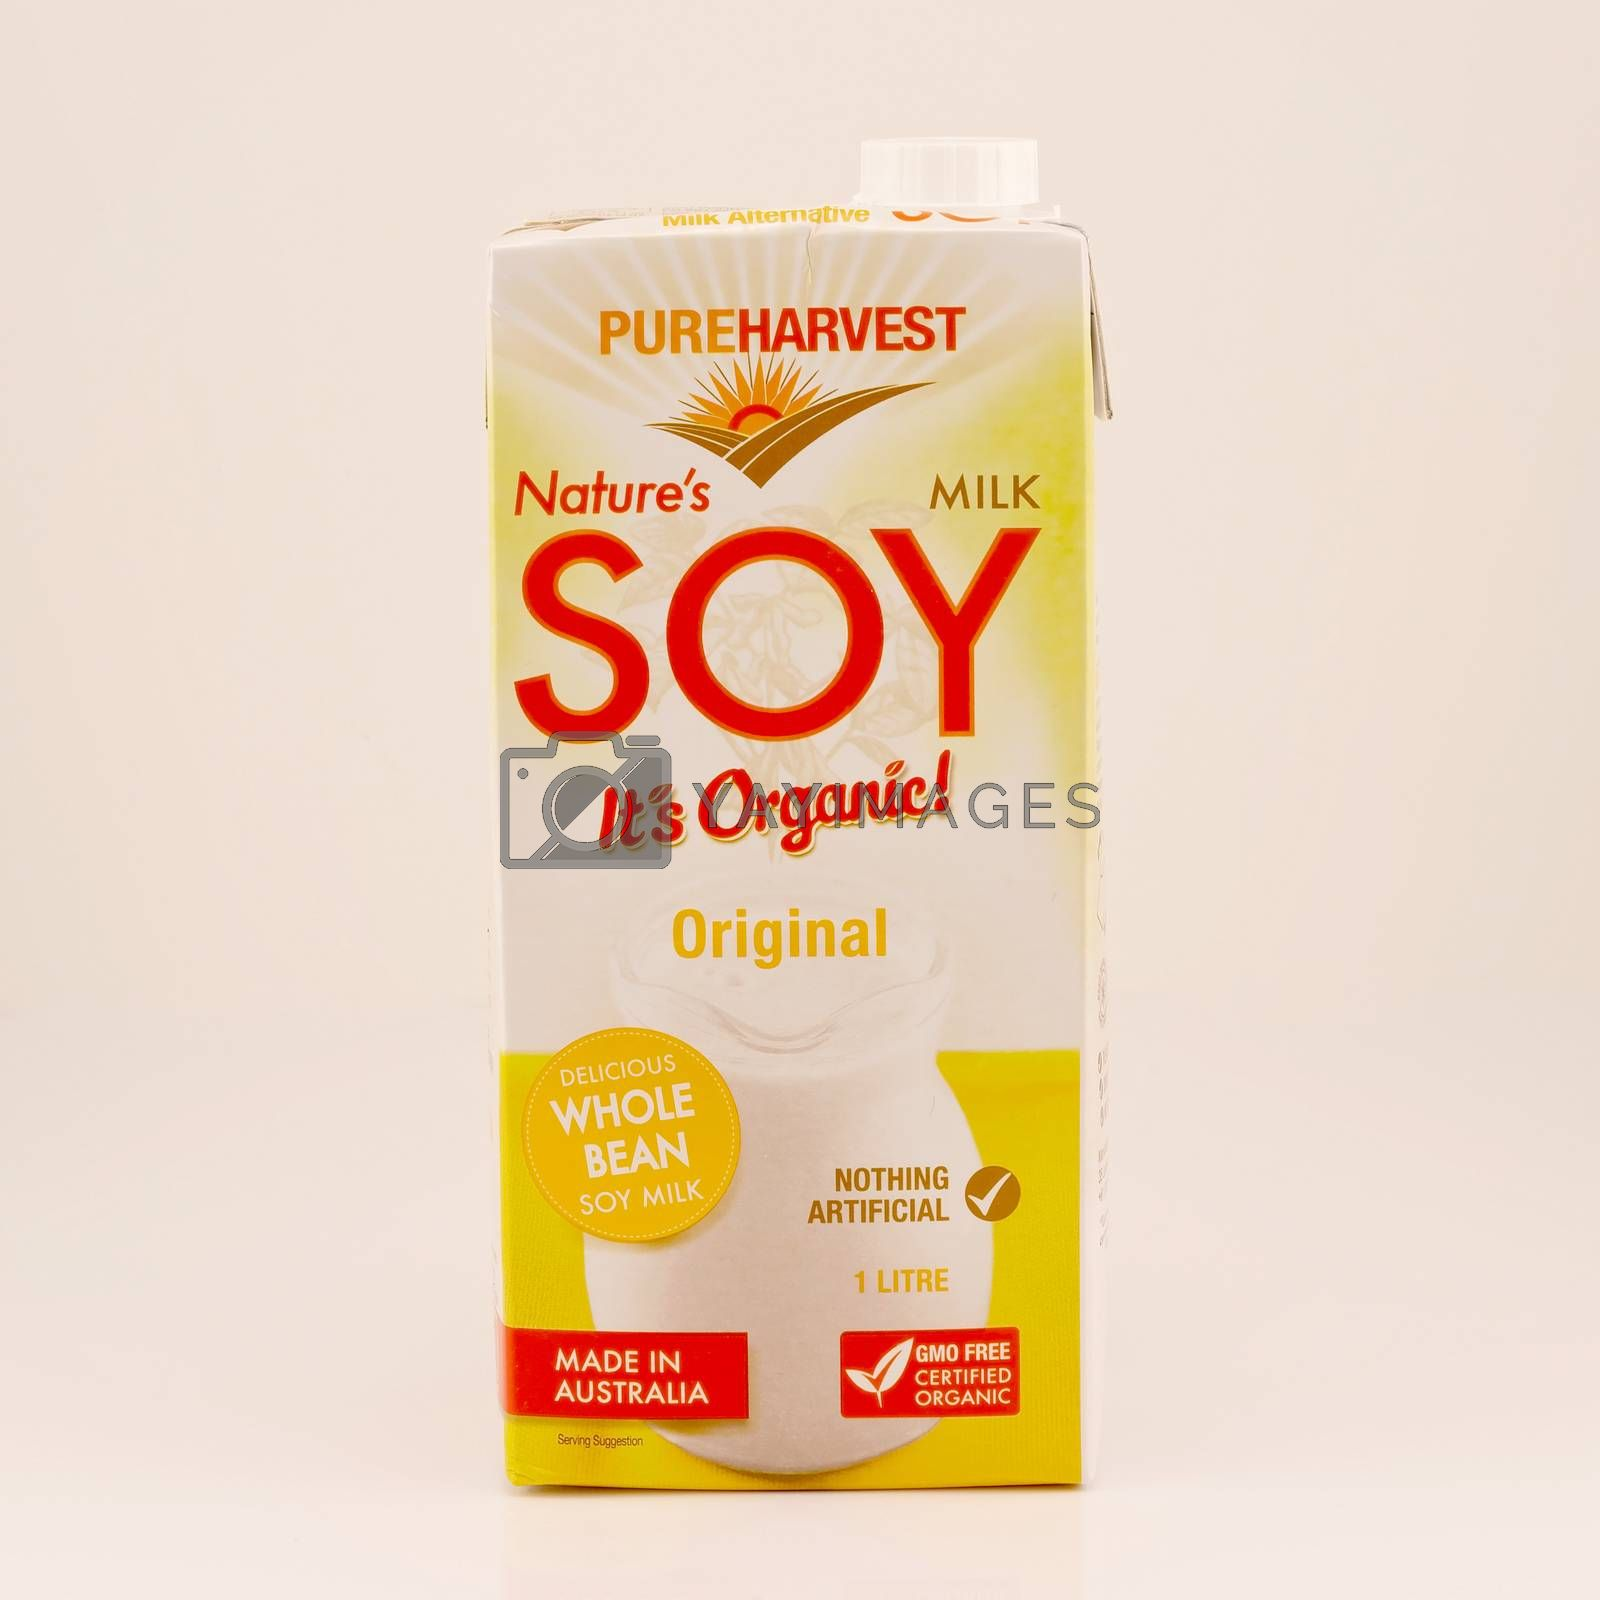 Mackay, Queensland, Australia - February 2020: A carton of long life soy milk isolated on a white background, product photography